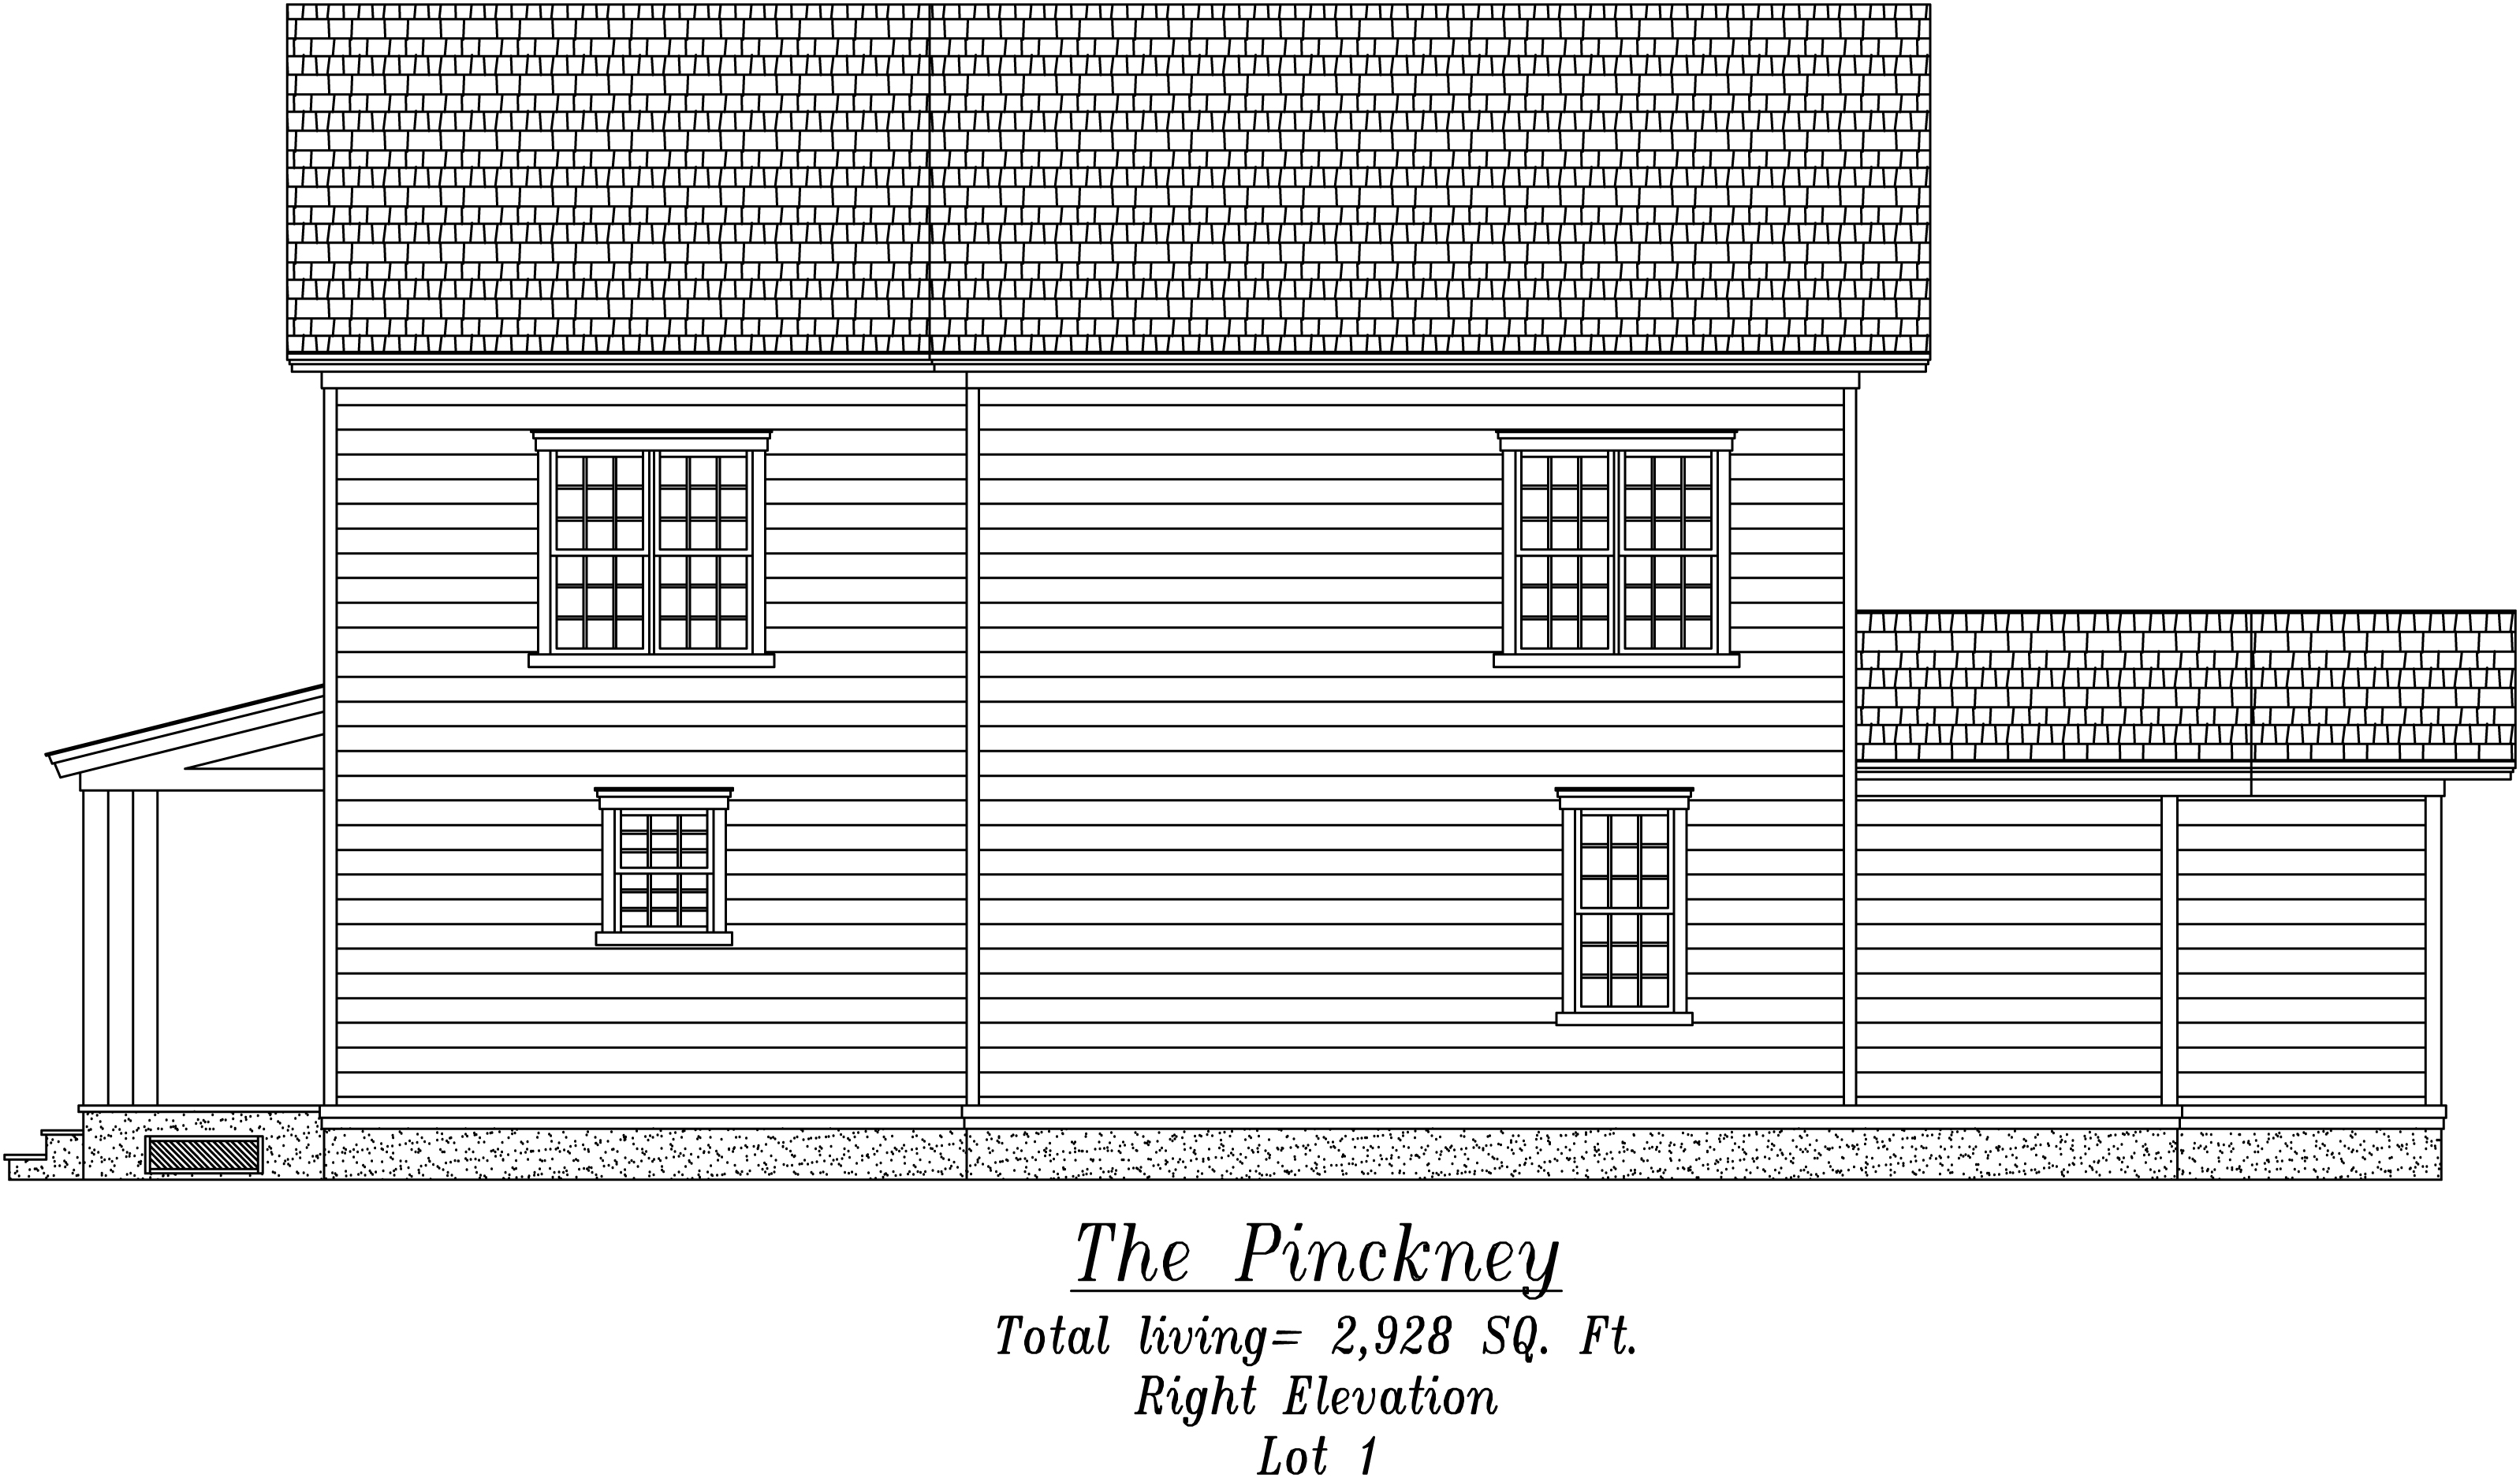 Pinckney Right Elevation